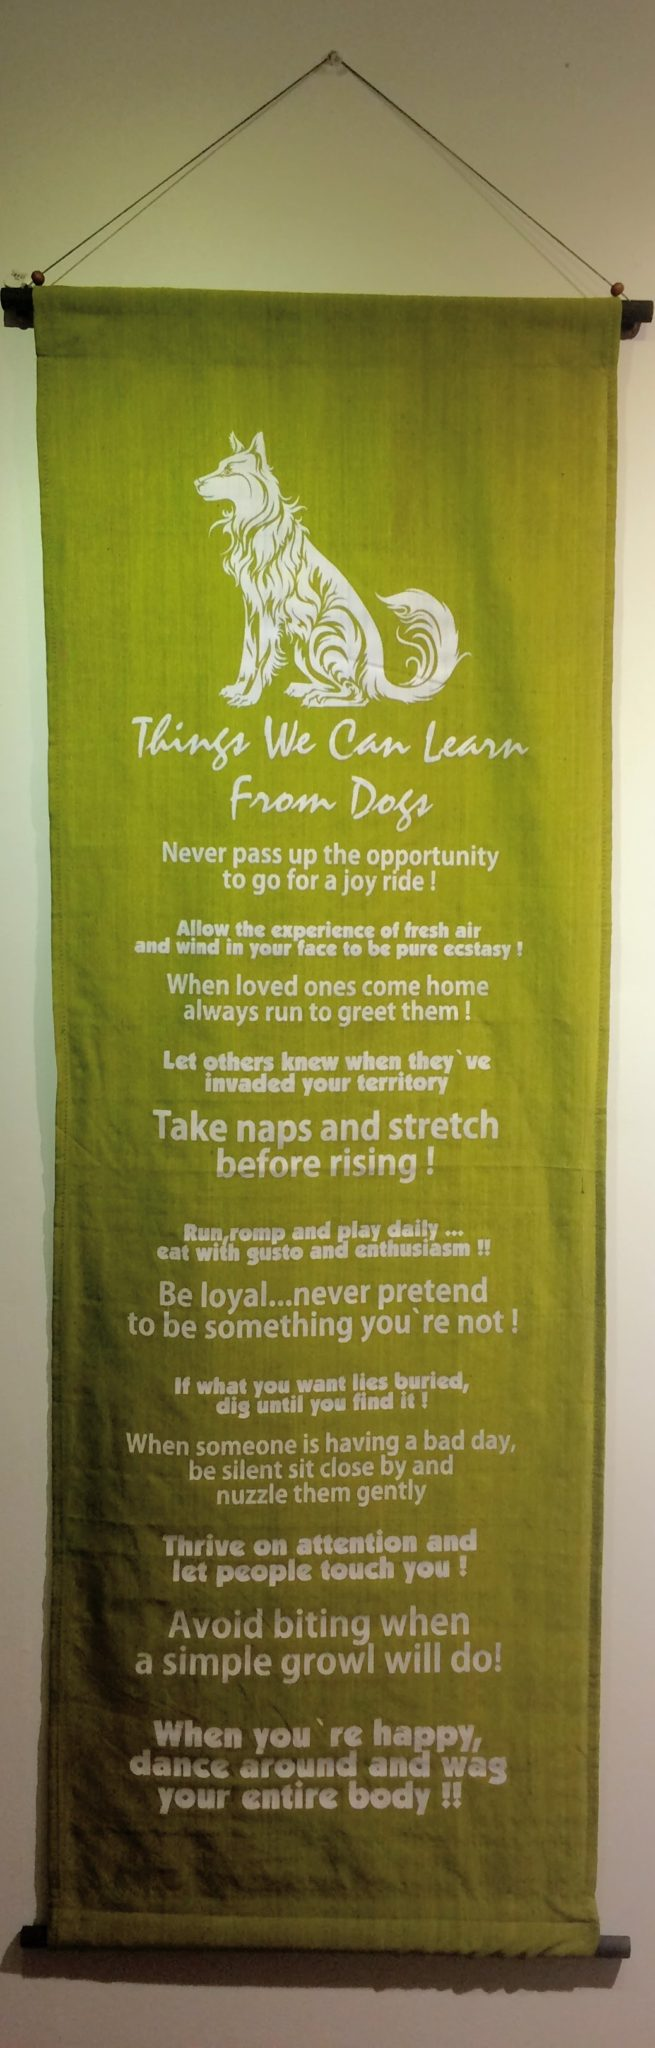 Things We Can Learn From Dogs Banner